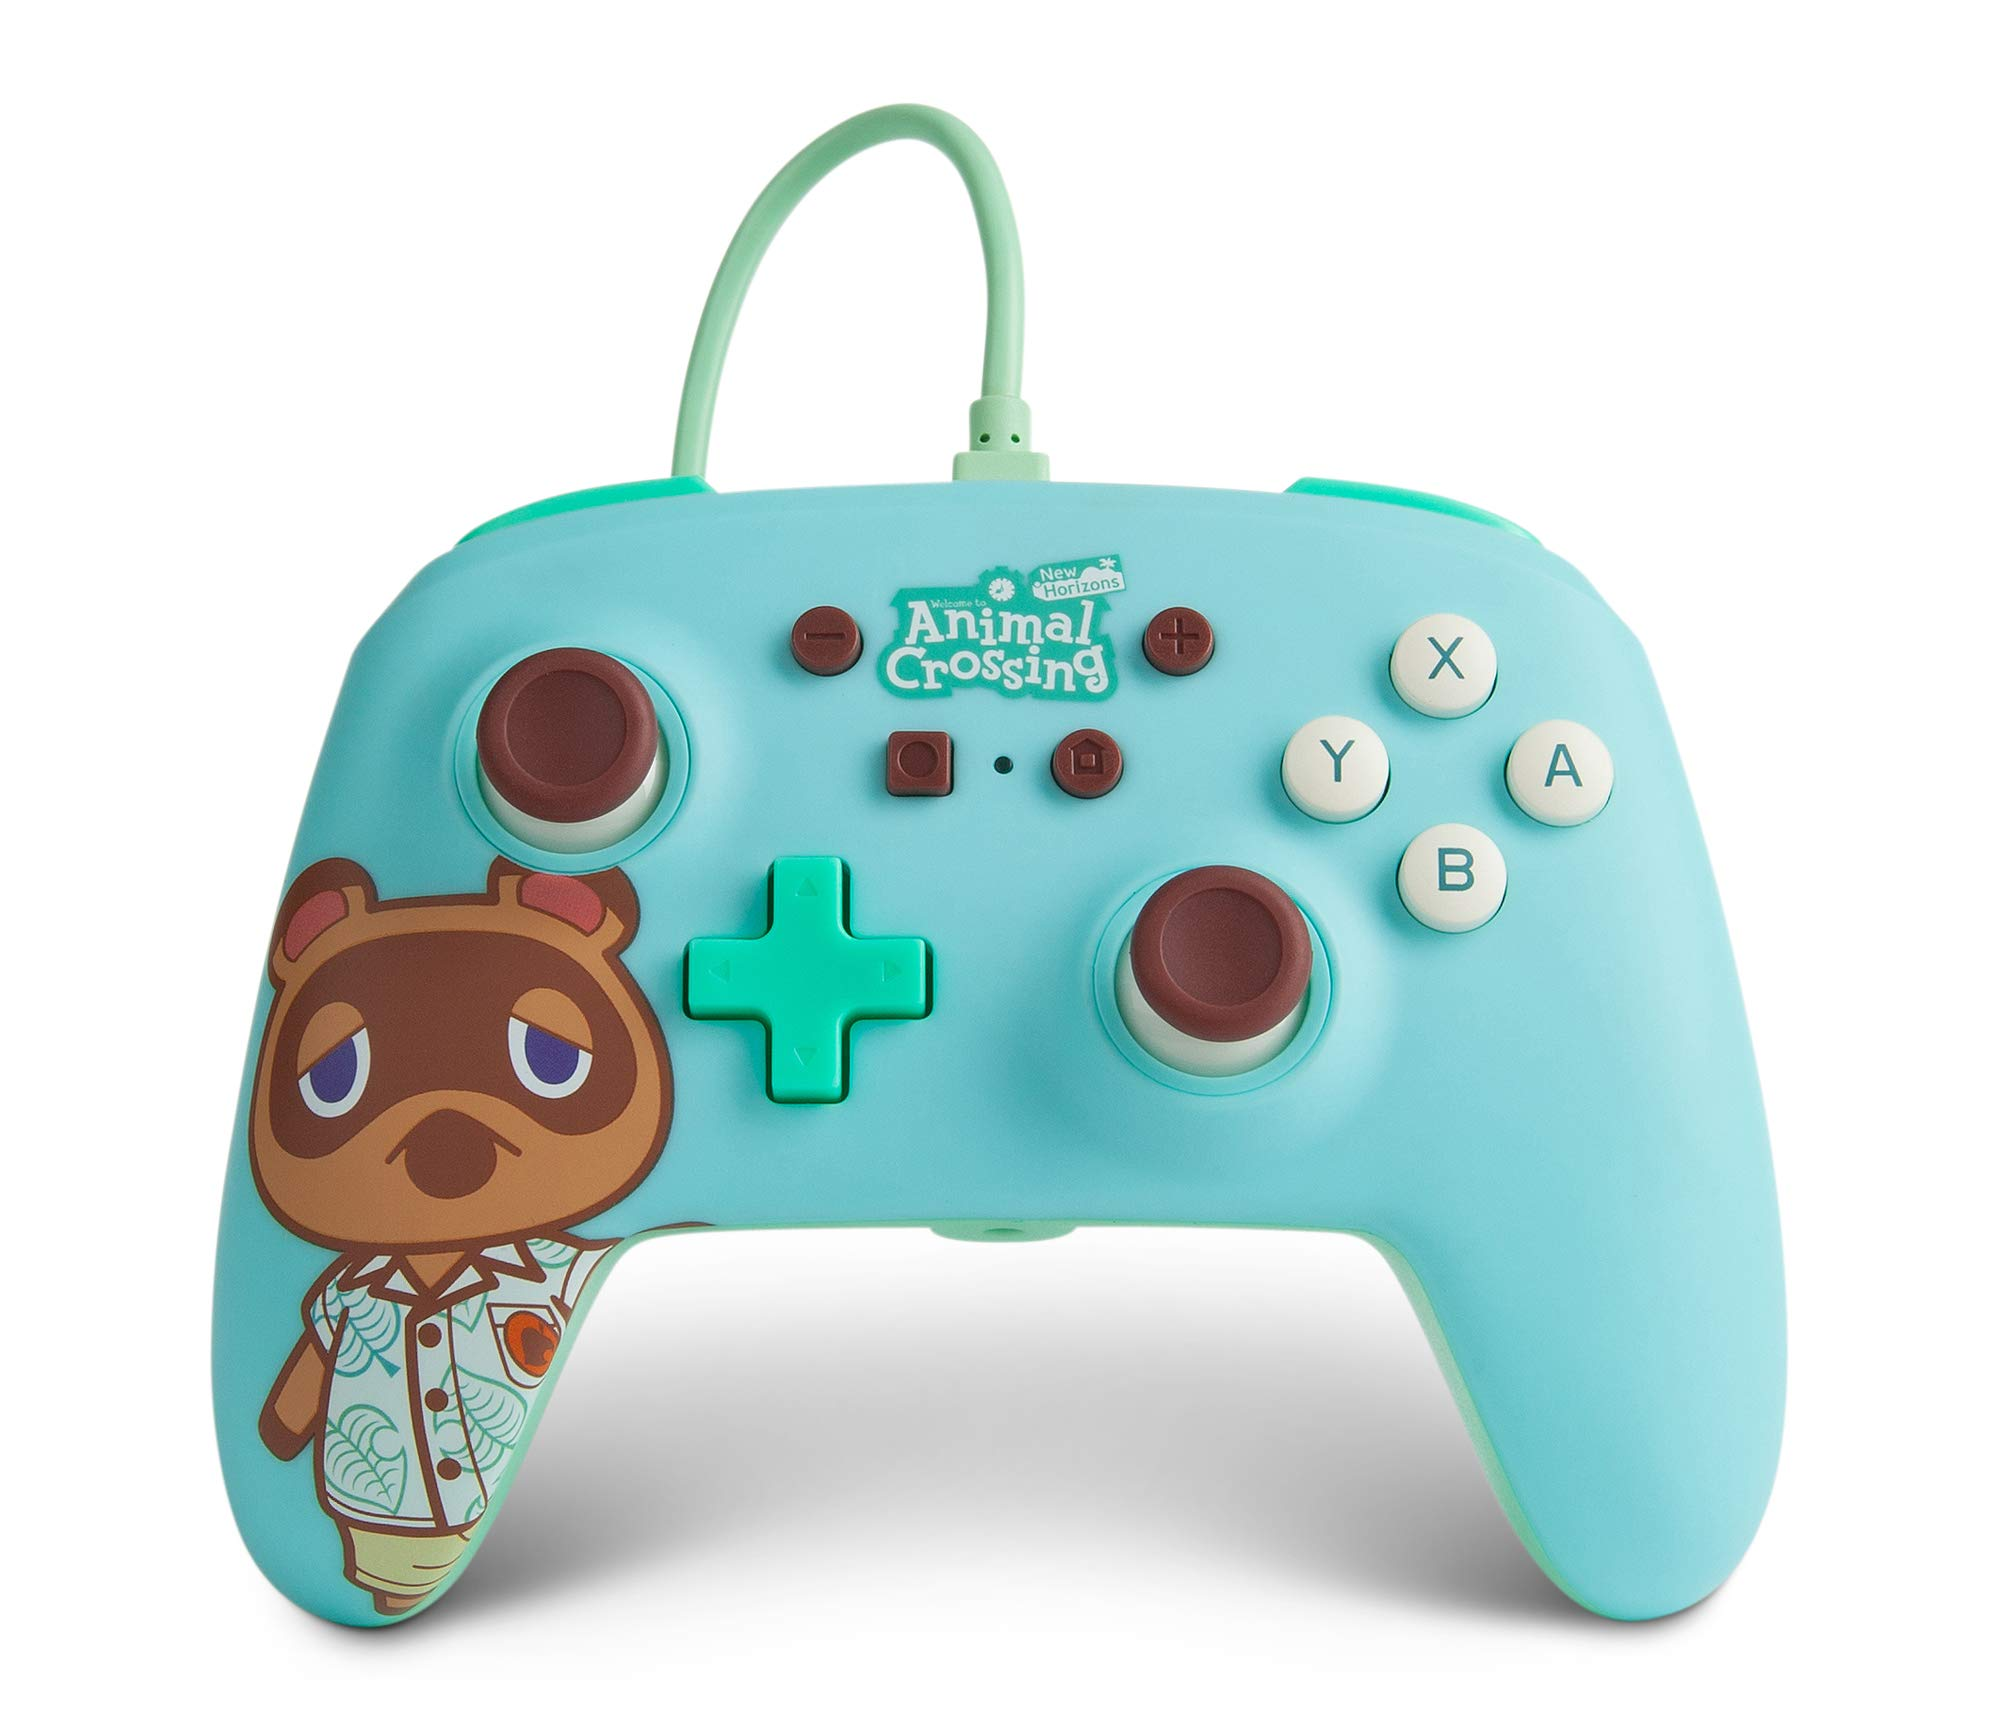 PowerA Enhanced Wired Controller for Nintendo Switch - Animal Crossing: Tom Nook, Nintendo Switch Lite, Gamepad, Game Controller, Wired Controller, Officially Licensed - Nintendo Switch